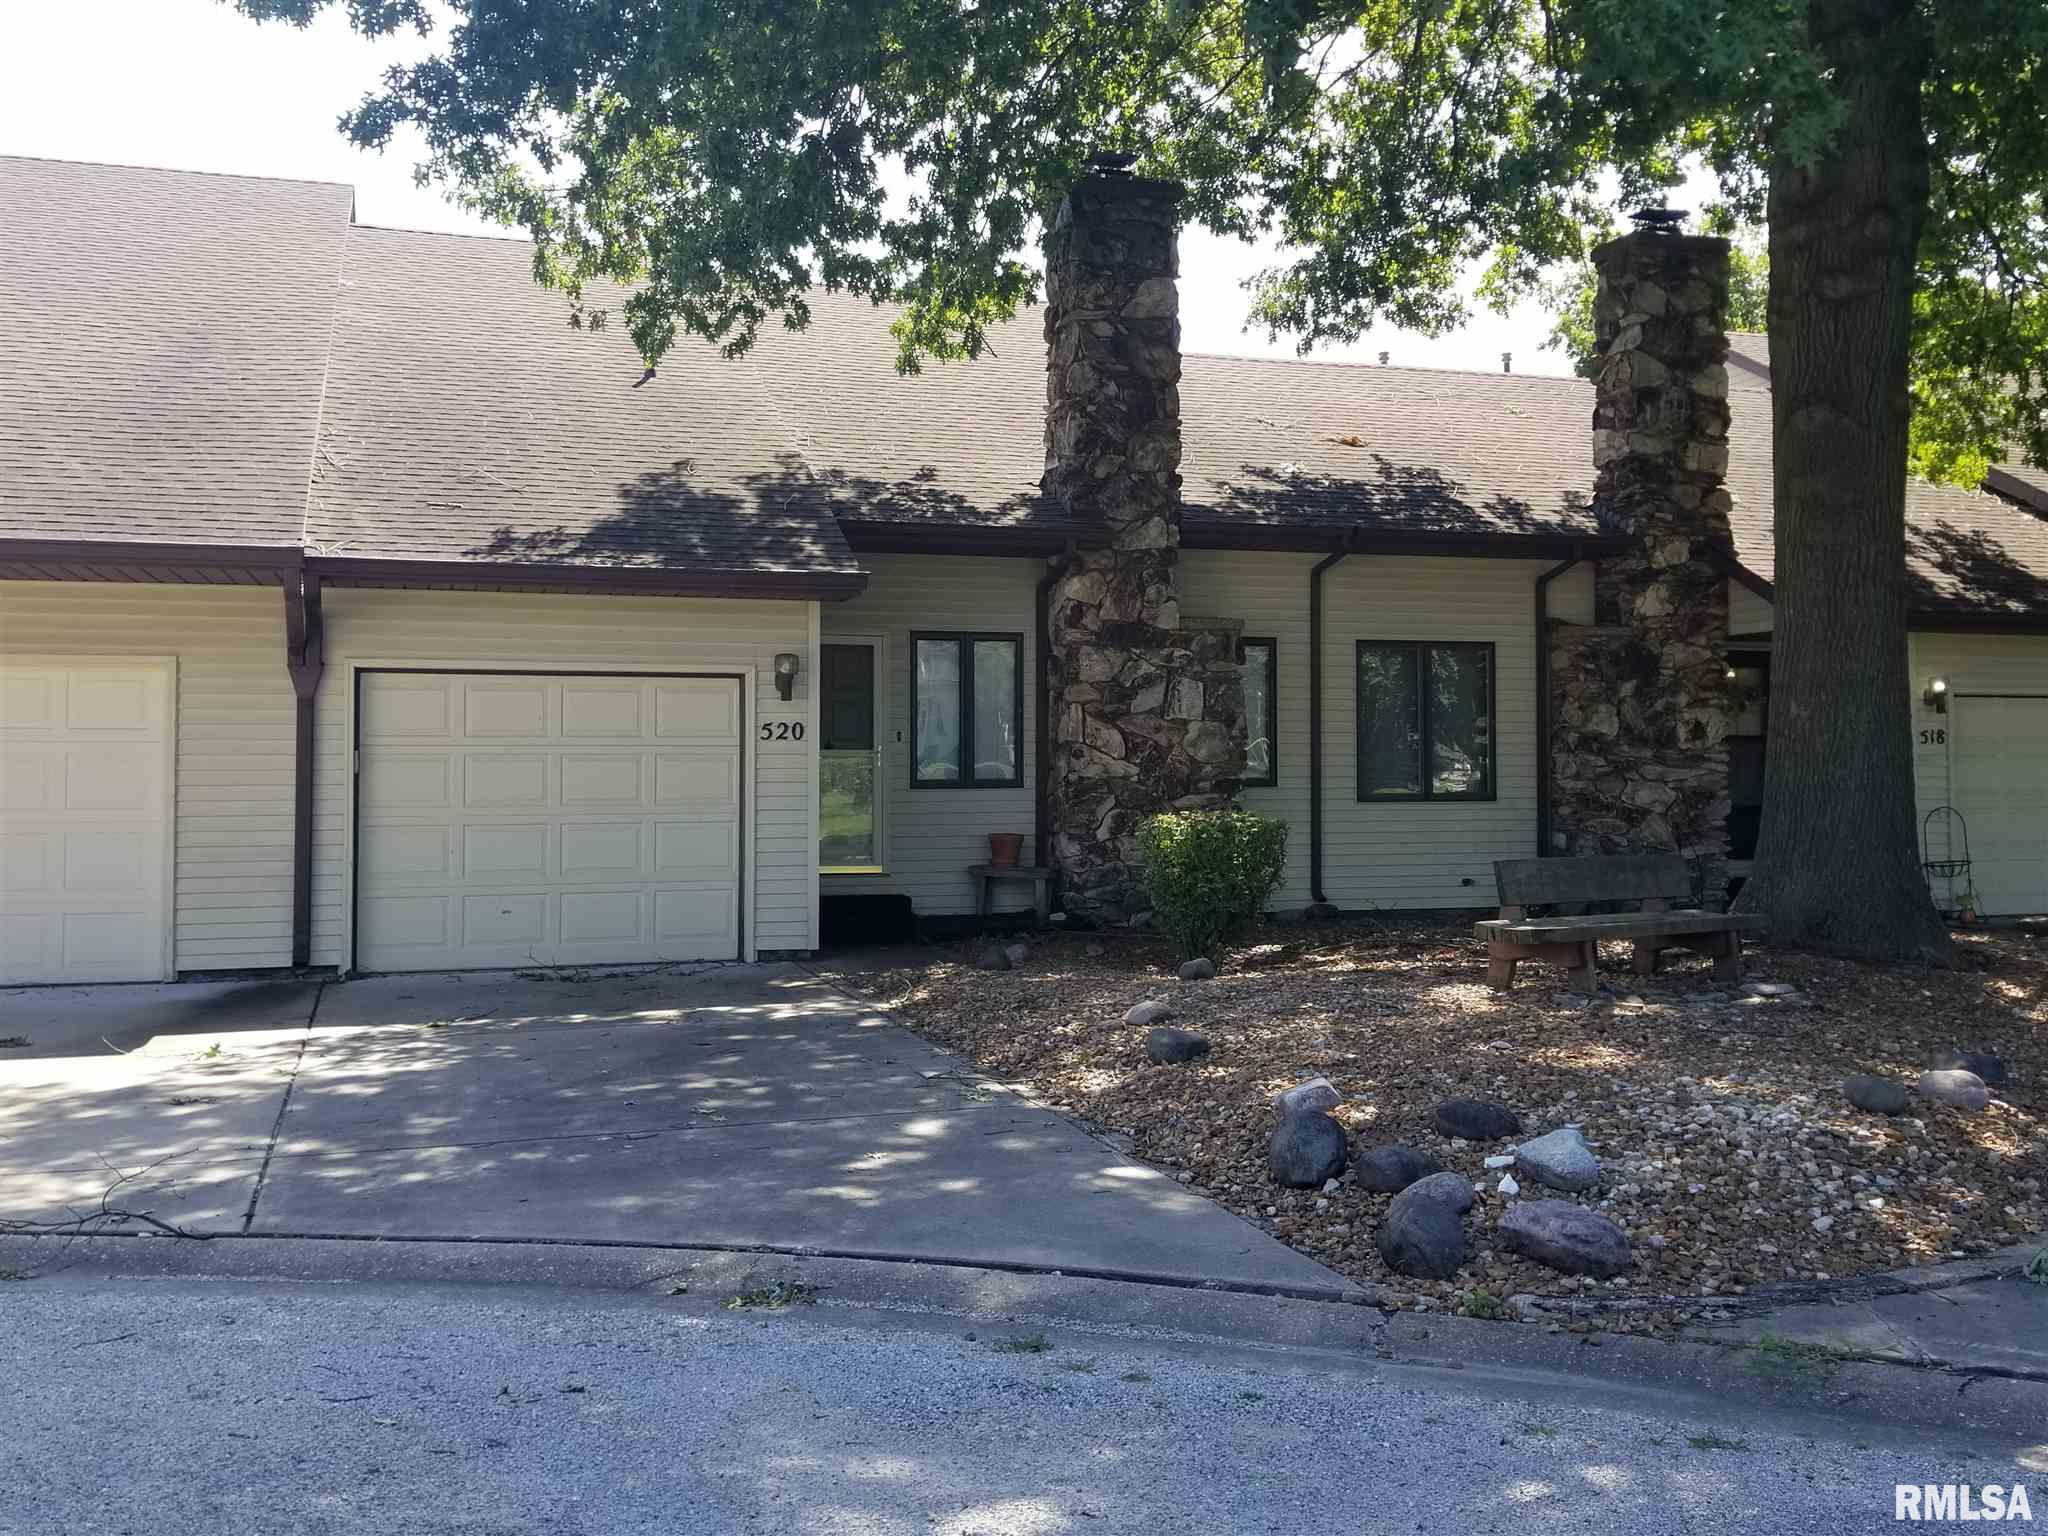 520 N SPRINGFIELD Property Photo - Virden, IL real estate listing